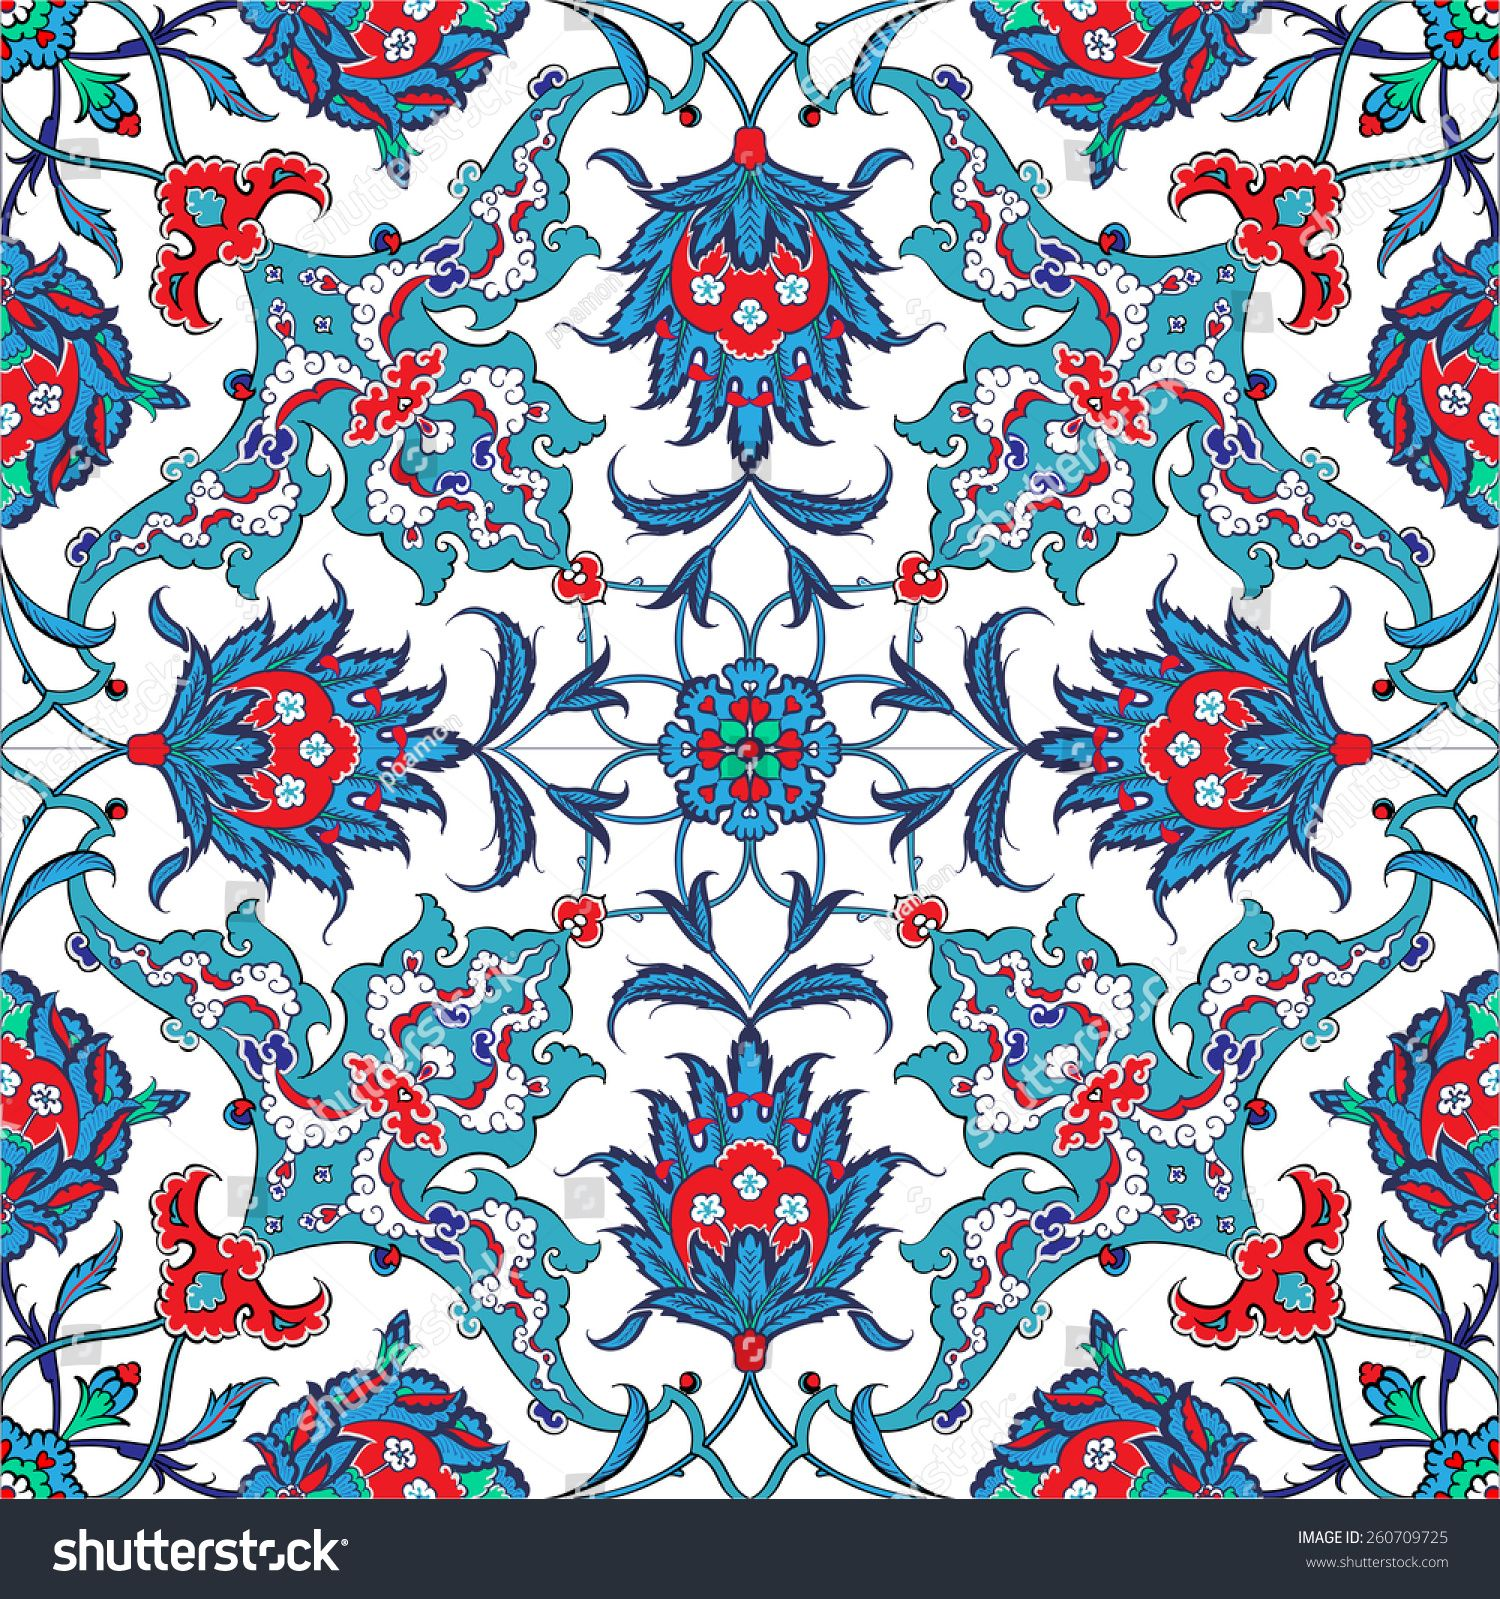 Traditional Turkish Ottoman Red Flower Home Decor Mosaic: Turkish And Ottoman Empire's Era Traditional Seamless